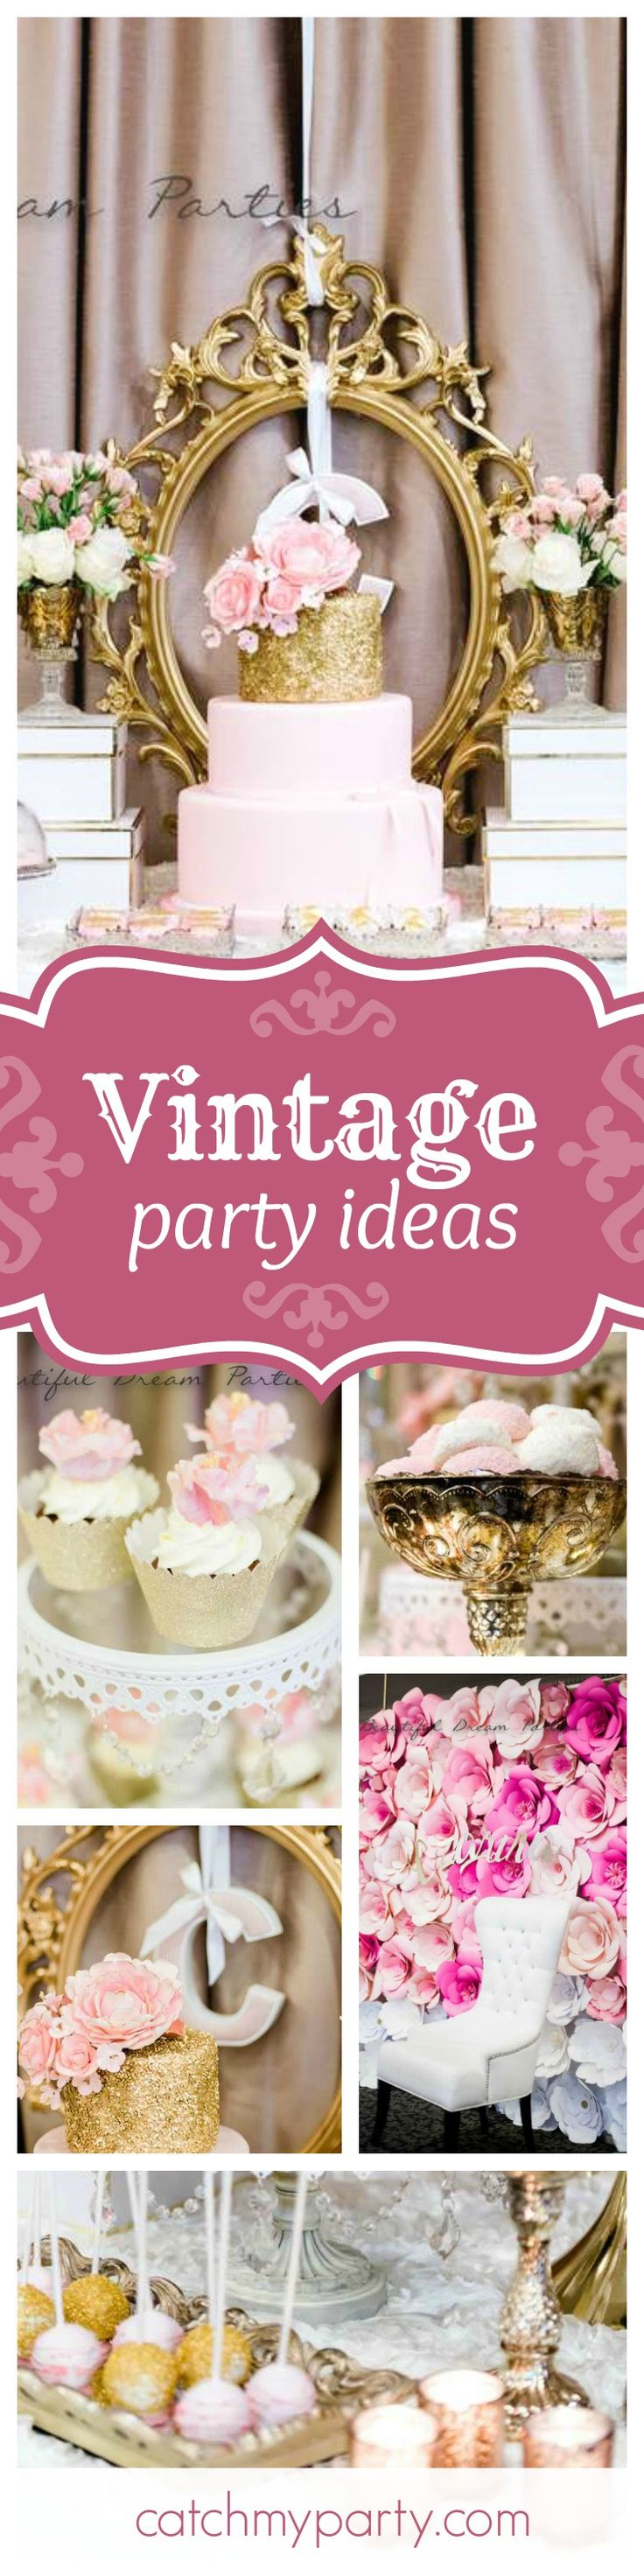 You are going to love this vintage elegant pink & gold birthday party. The birthday cake is stunning!! See more party ideas and share yours at CatchMyParty.com